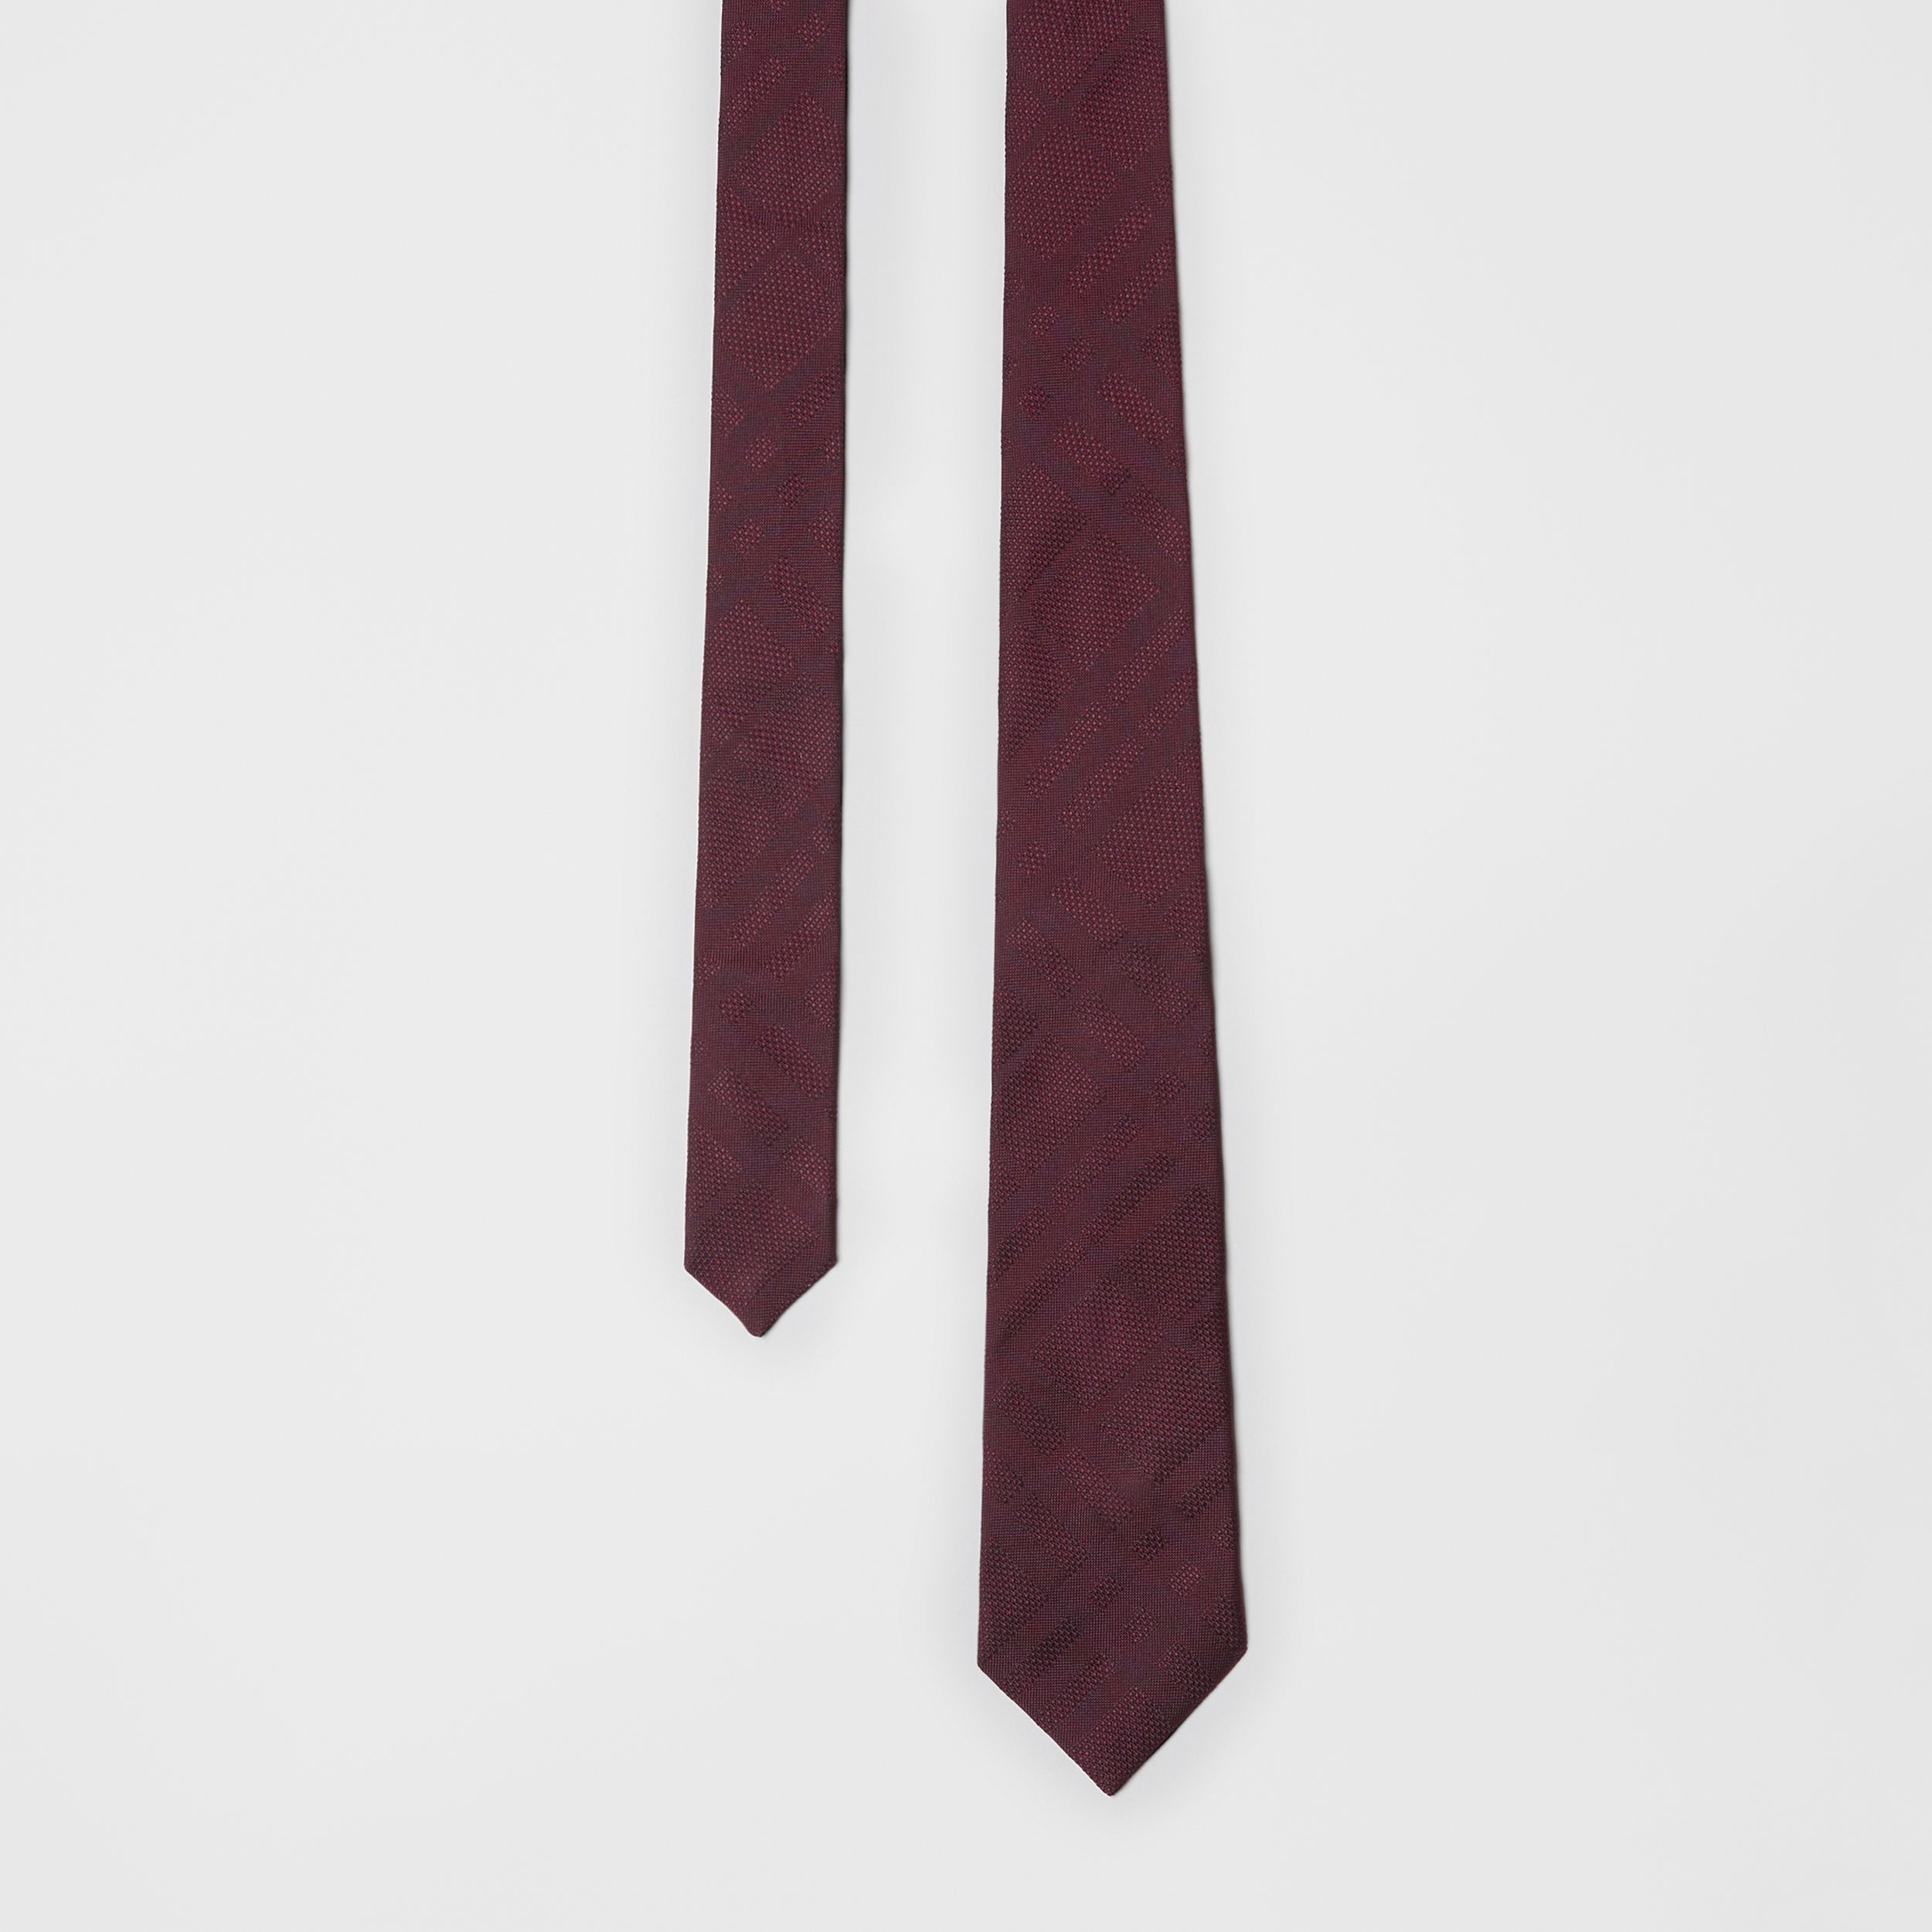 Classic Cut Check Silk Jacquard Tie in Deep Claret - Men | Burberry - 1